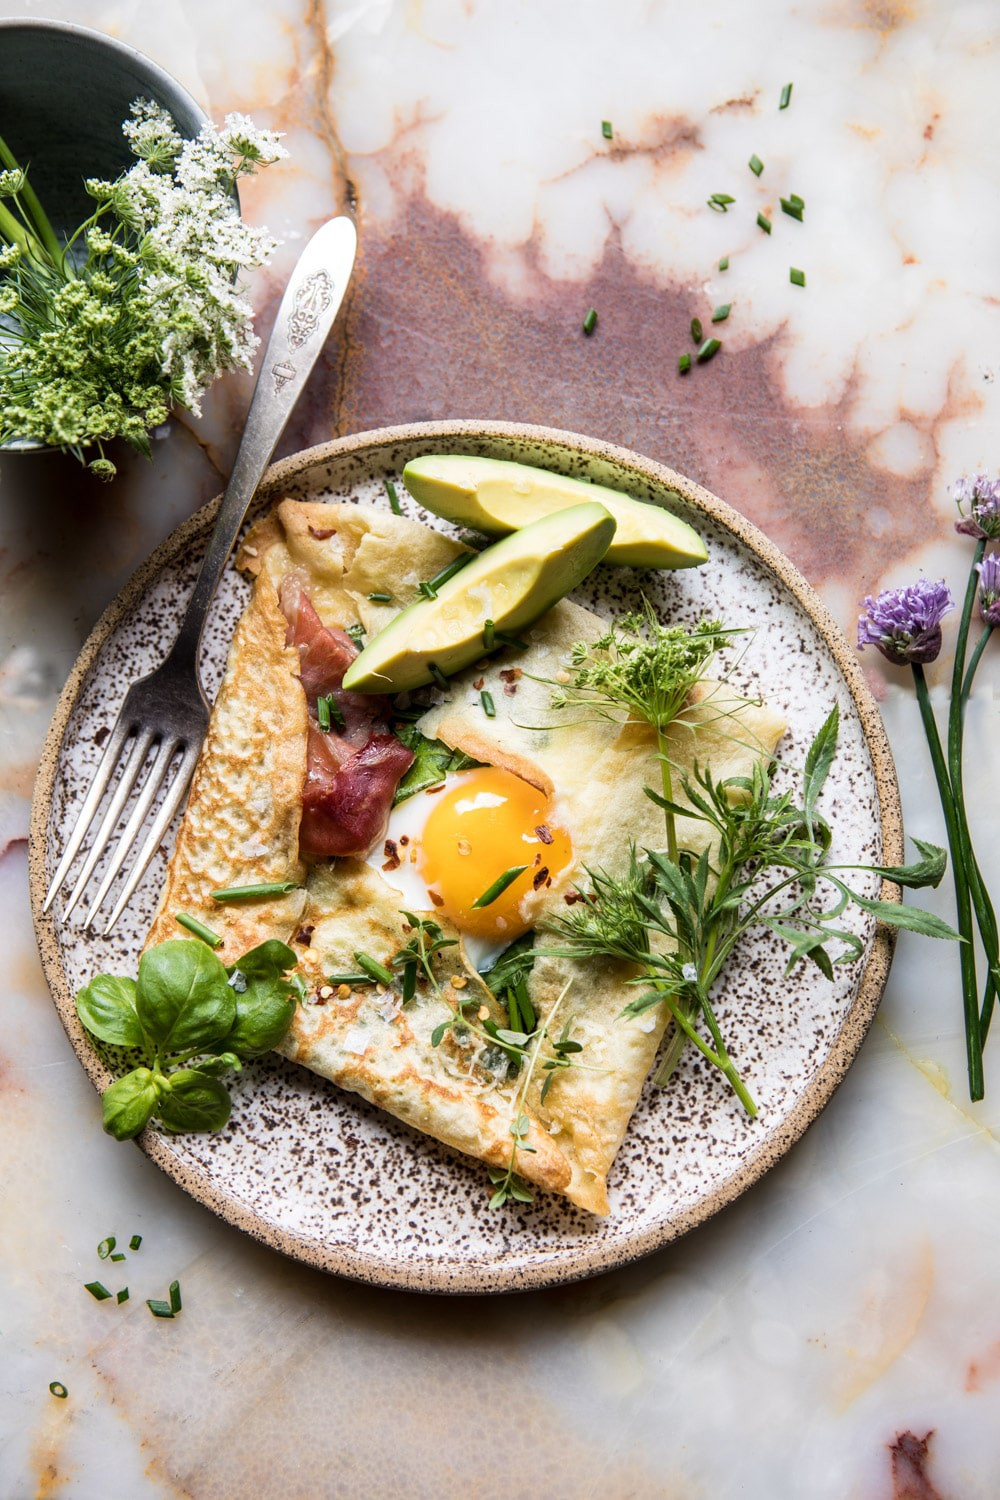 Baked-Egg-Crepes-with-Spring-Herbs-and-Avocado-1.jpg